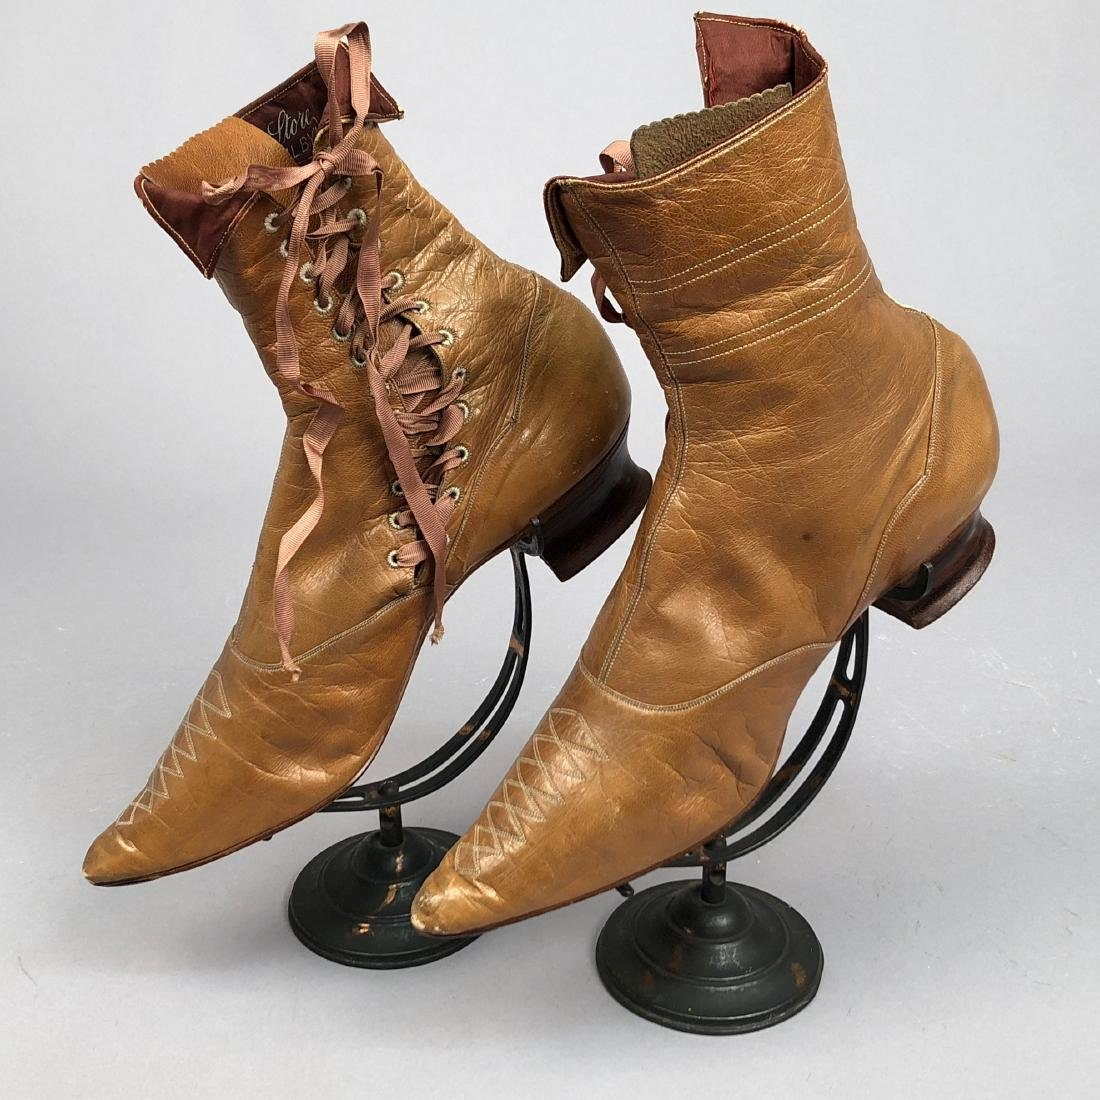 LADY'S SIDE-LACING BOOTS with TOPSTITCHING, 1890s